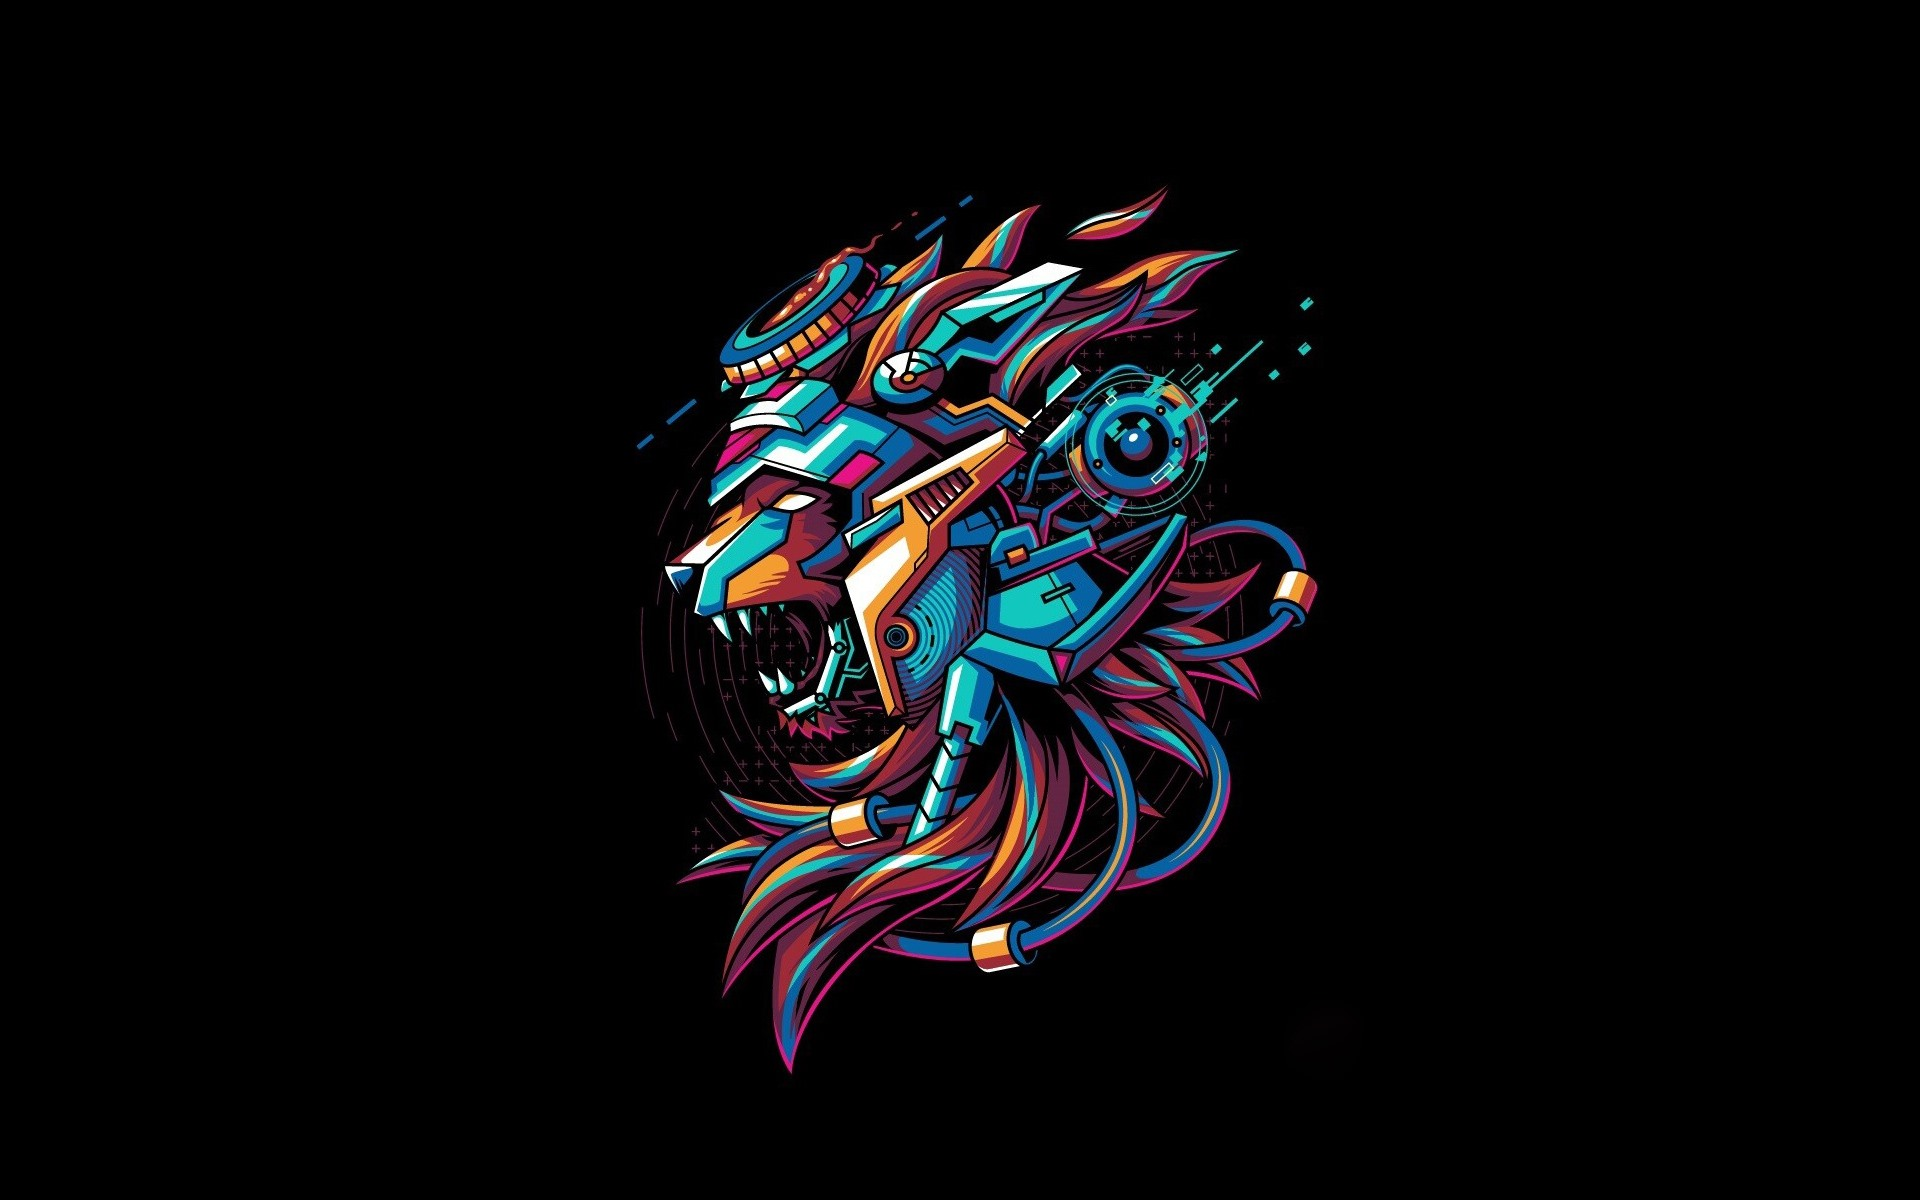 Lion Mecha Black Background Creative Design 640x1136 Iphone 5 5s 5c Se Wallpaper Background Picture Image